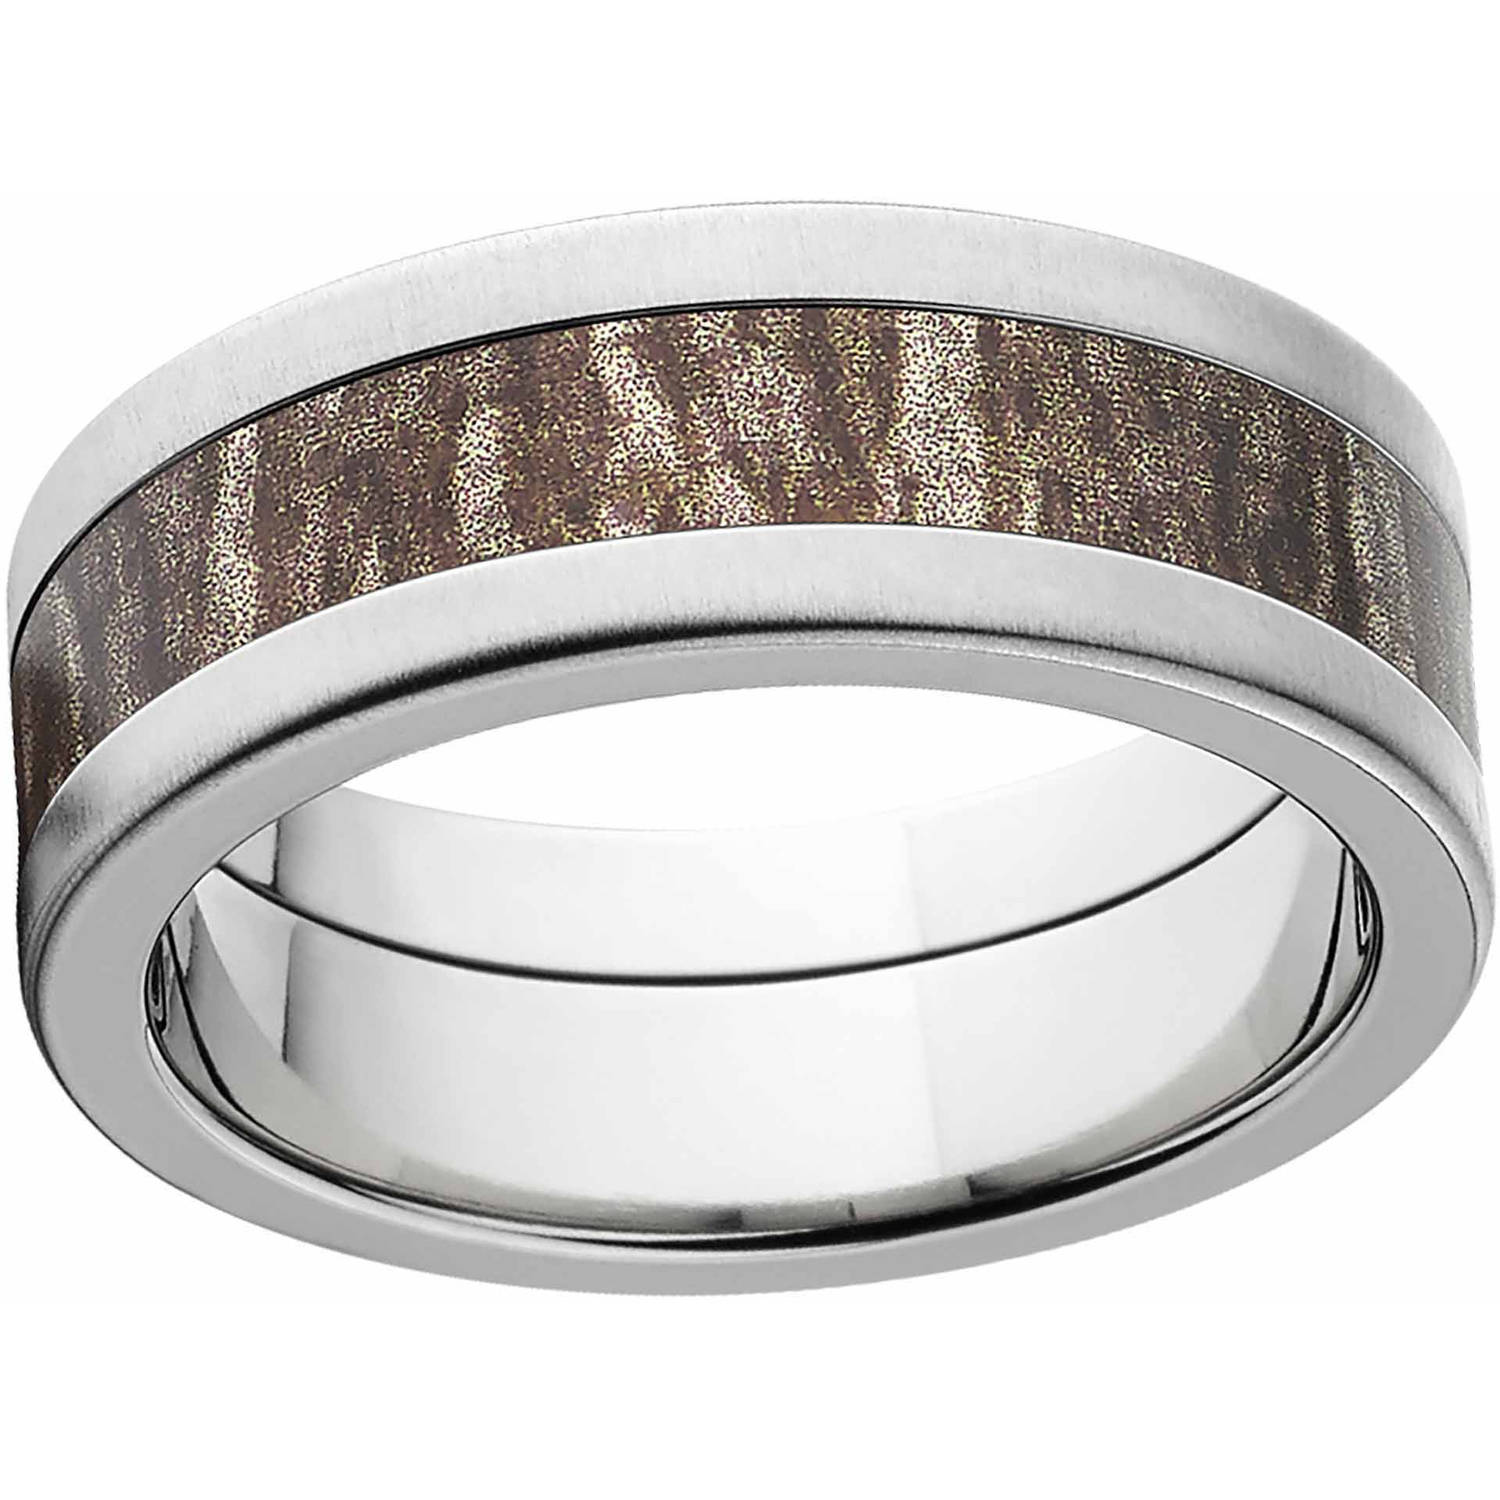 Mossy Oak Bottomland Men's Camo 8mm Stainless Steel Wedding Band with Cross Brushed Edges and Deluxe Comfort Fit